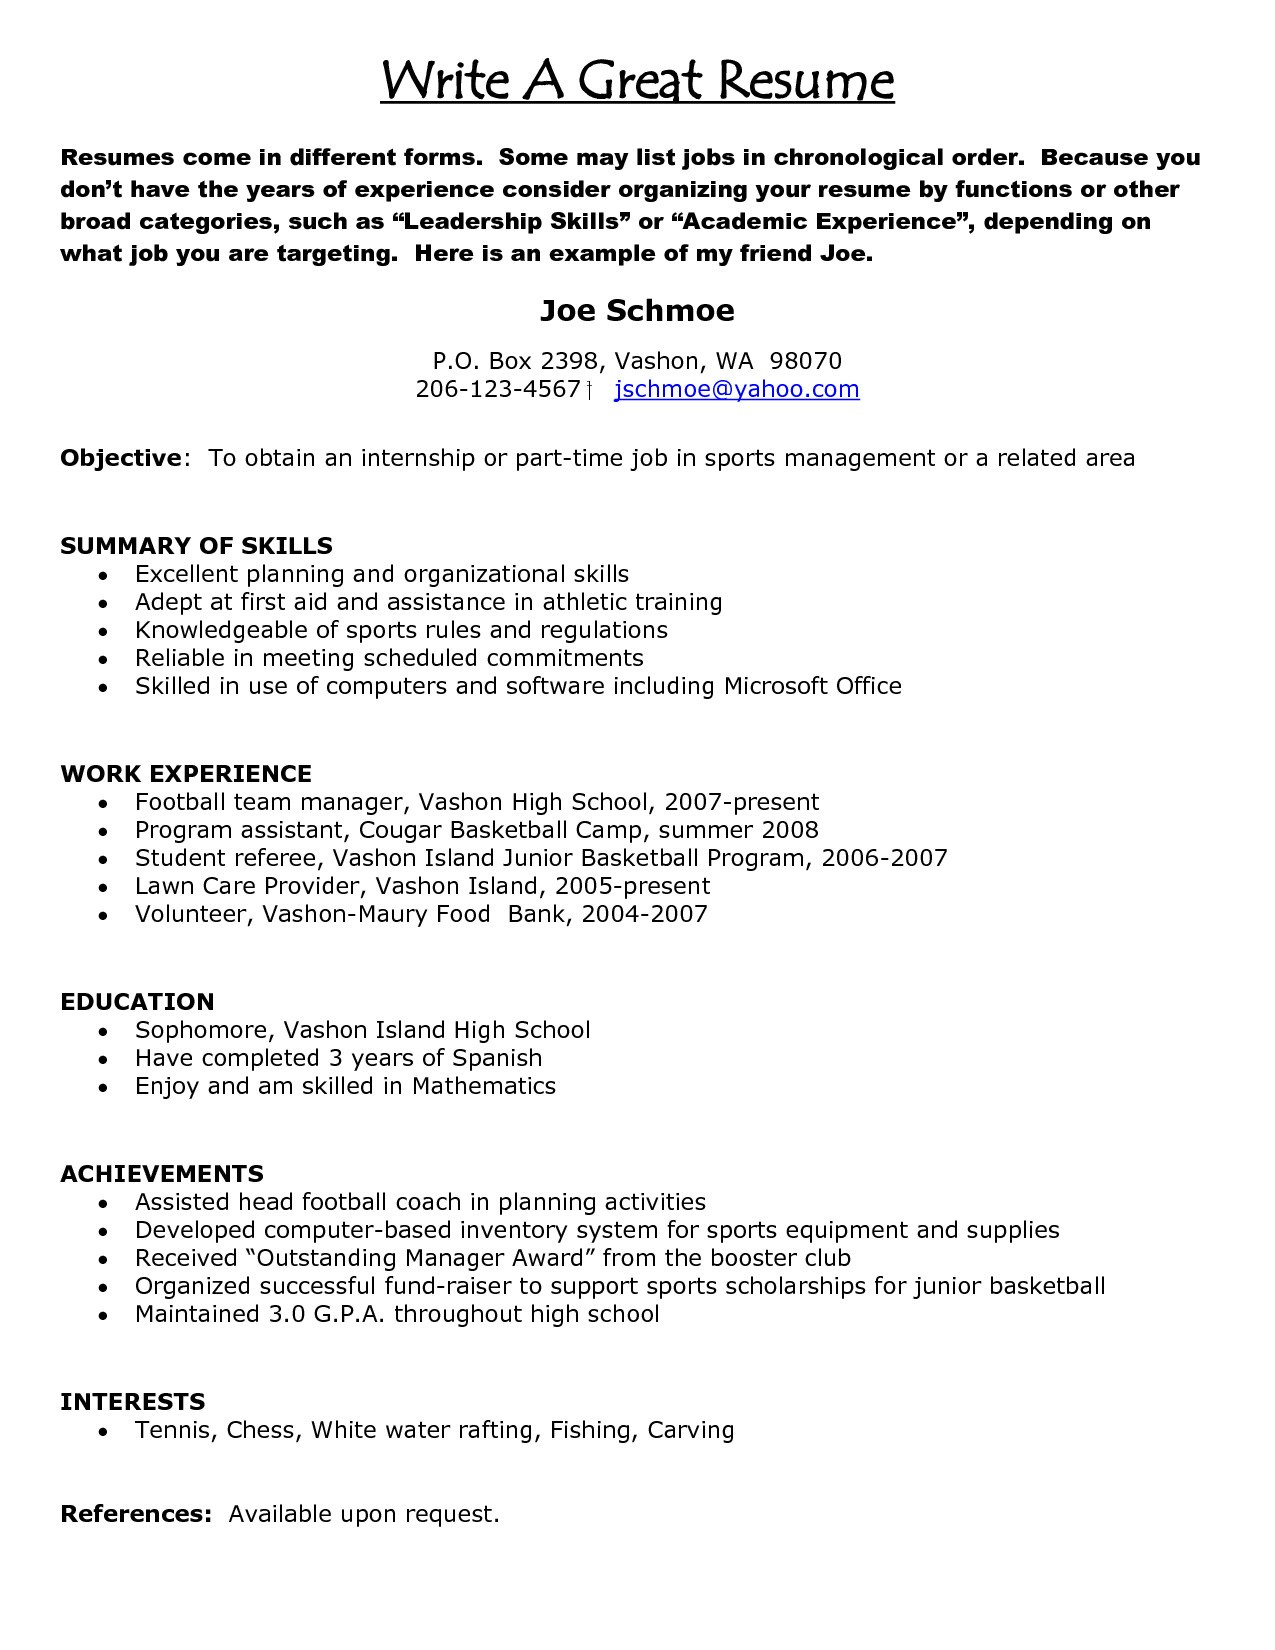 My Perfect Resume Safe - My Perfect Resume Contact Unique Beautiful Development Resume Sample